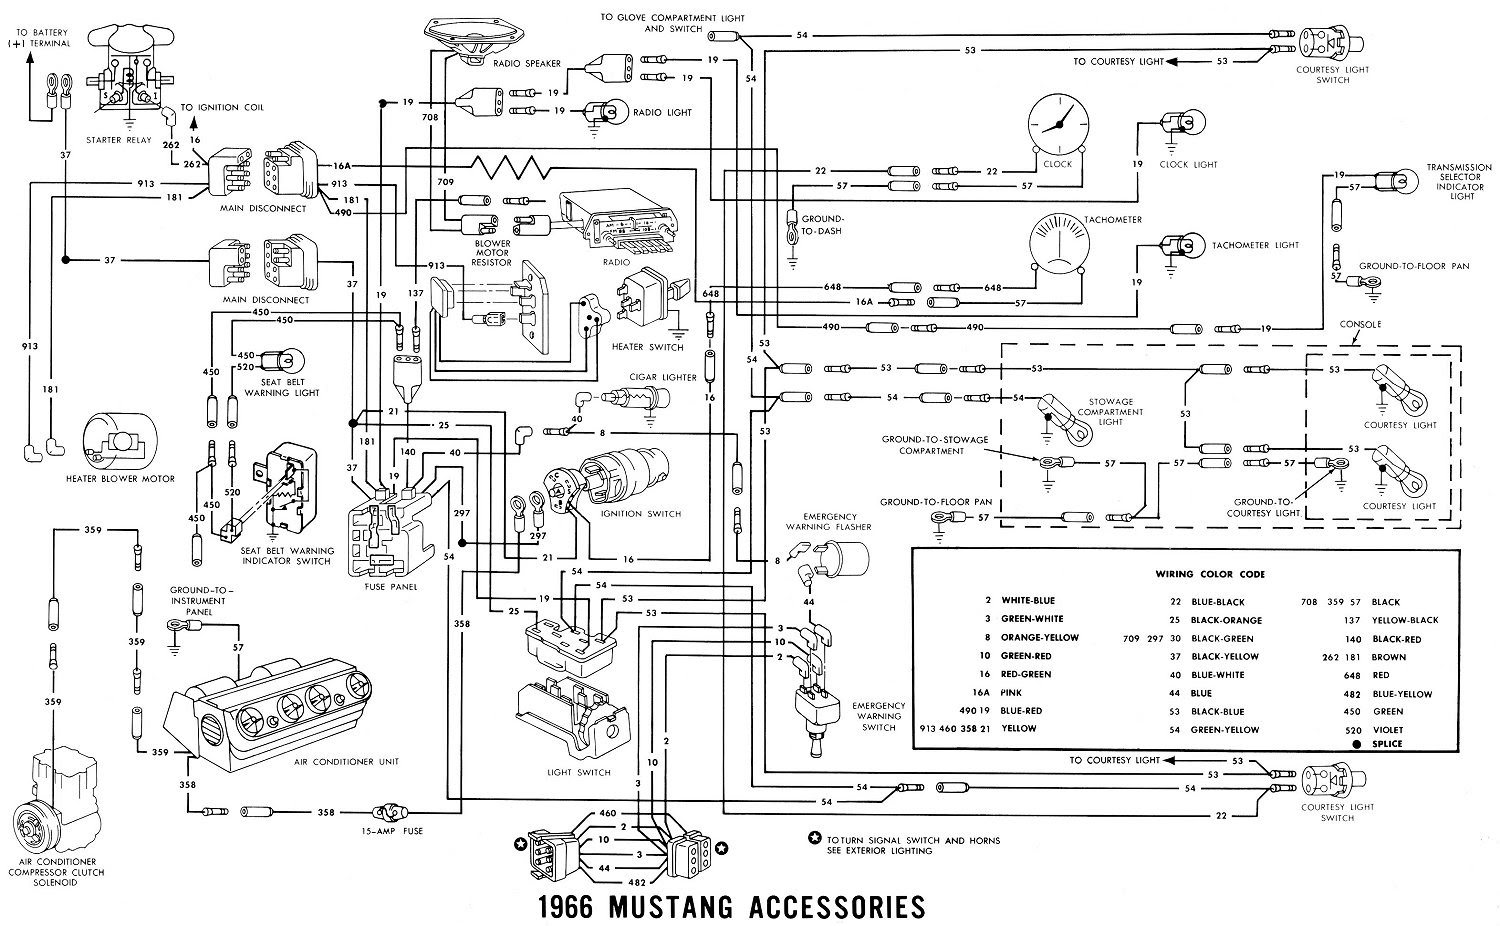 65 Mustang Wiring Diagram For Tail Lights Best Wiring Diagrams Sharp Follow A Sharp Follow A Ekoegur Es